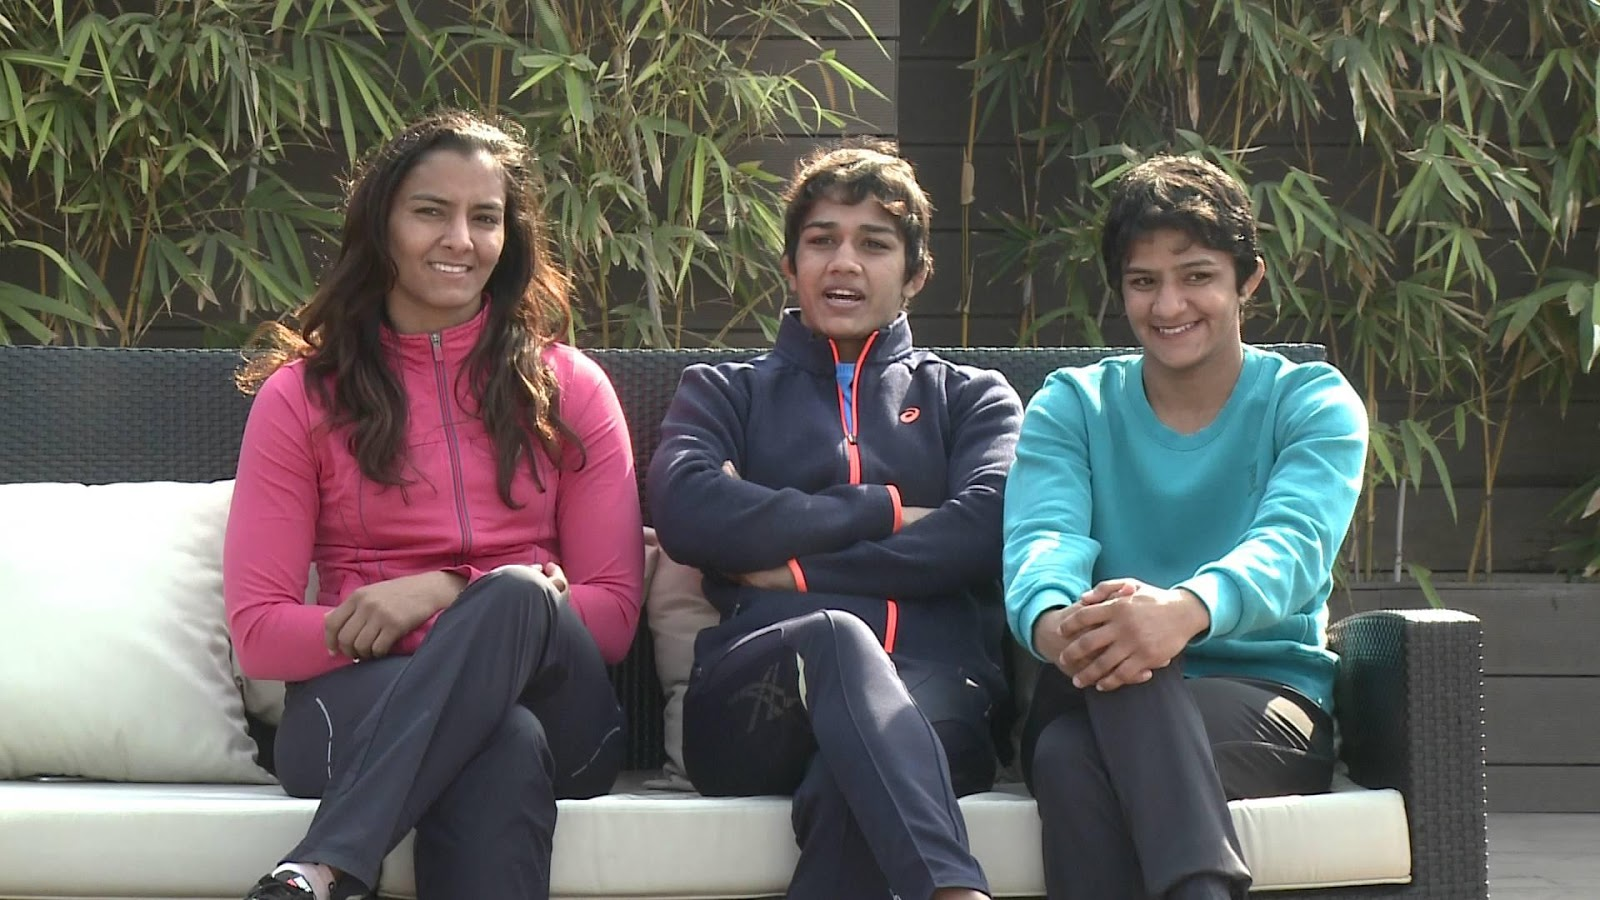 Children's Day, Inspirational, Dangal, Wrestling, Phogat sisters, Stereotypes, Haryana, Story